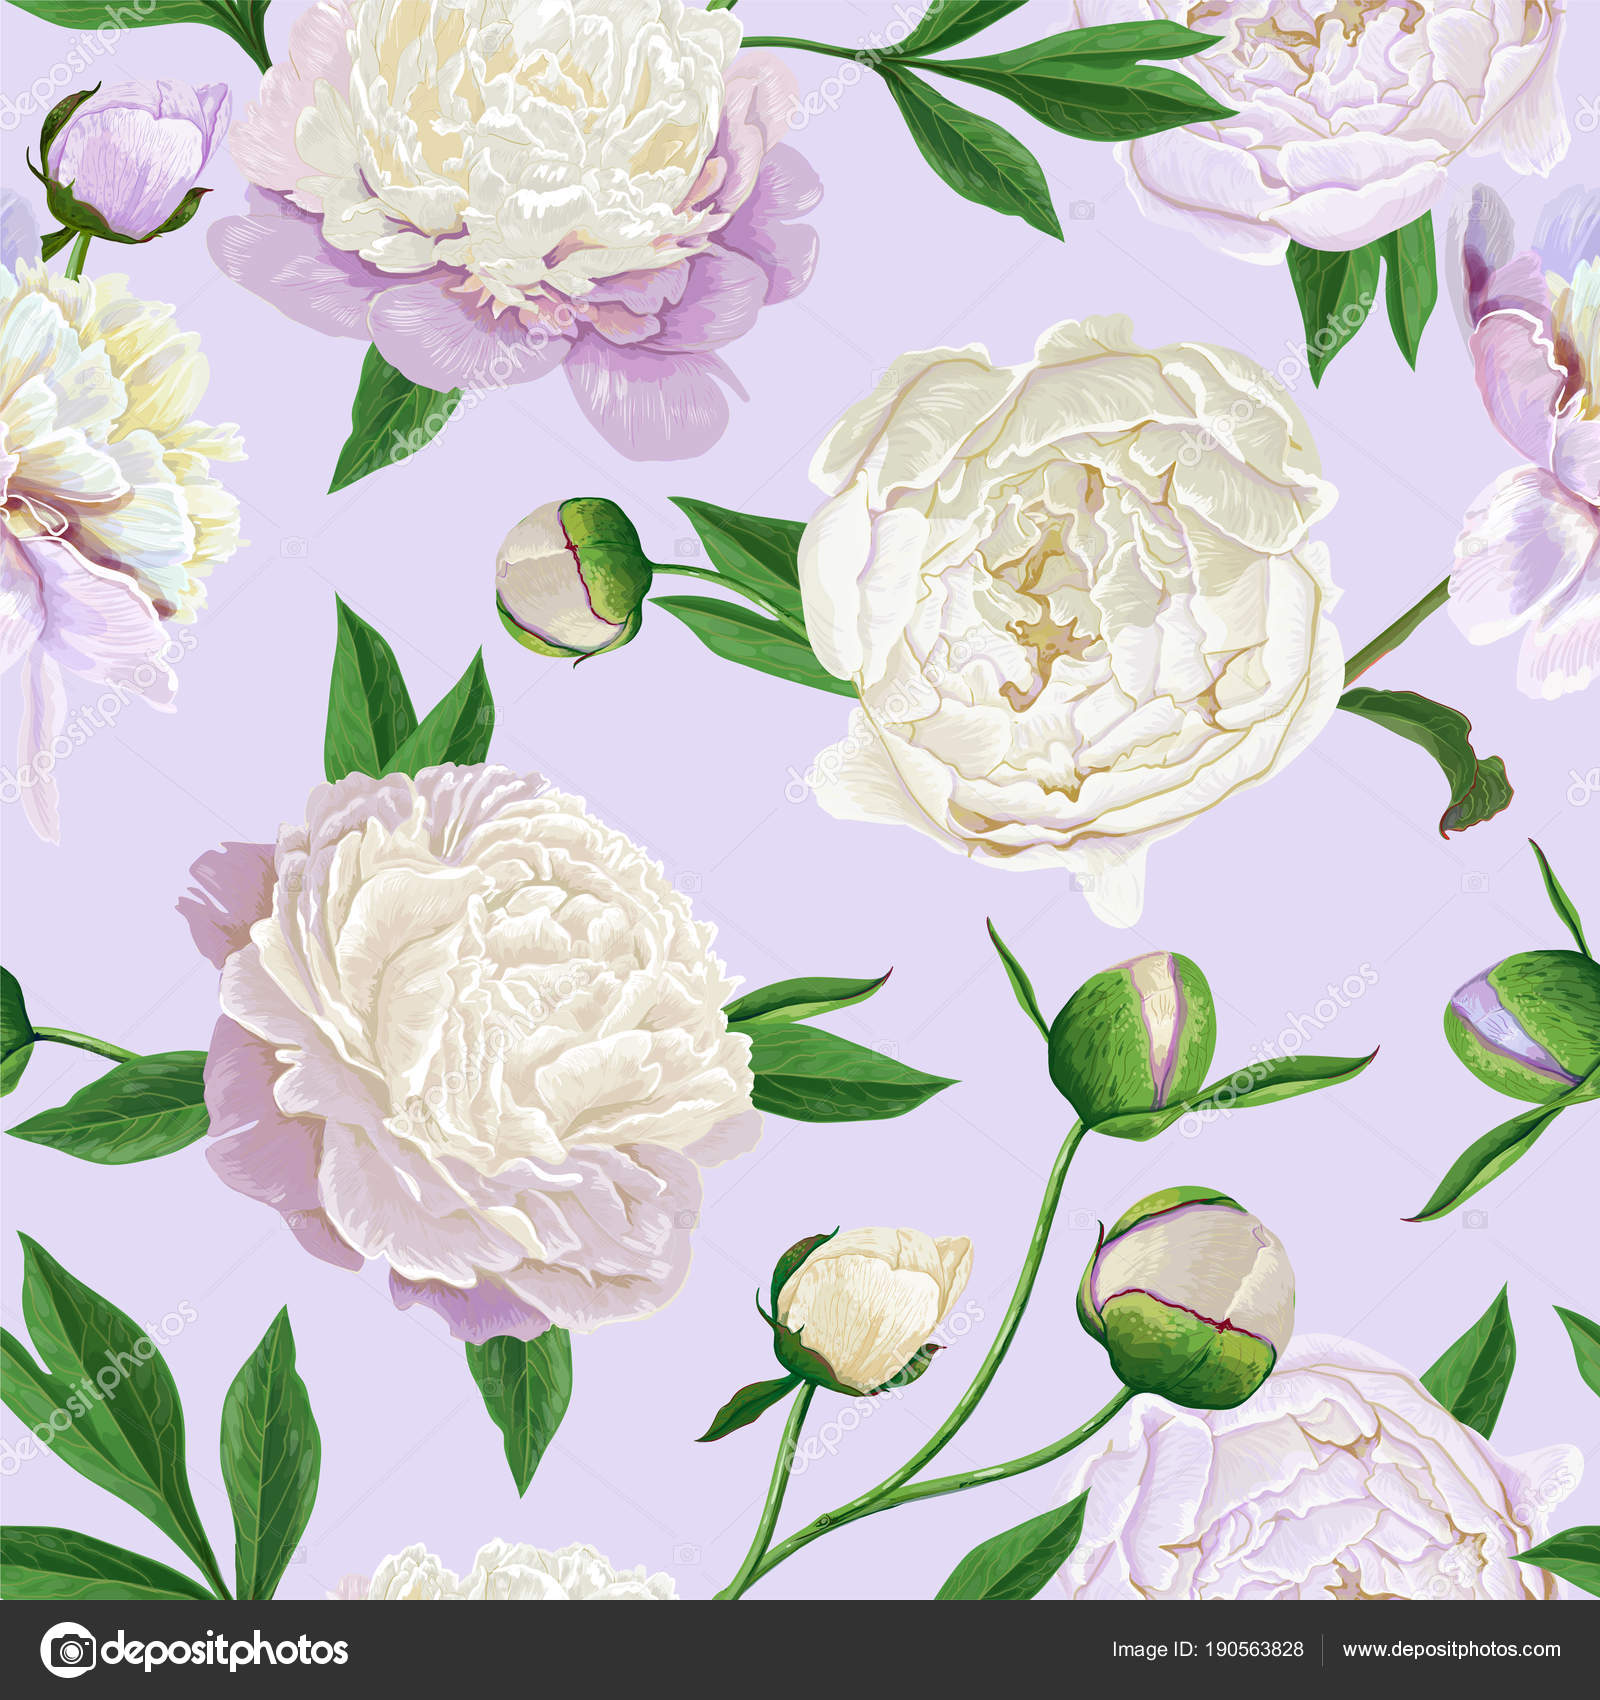 Floral Seamless Pattern with White Peonies Spring Blooming Flowers